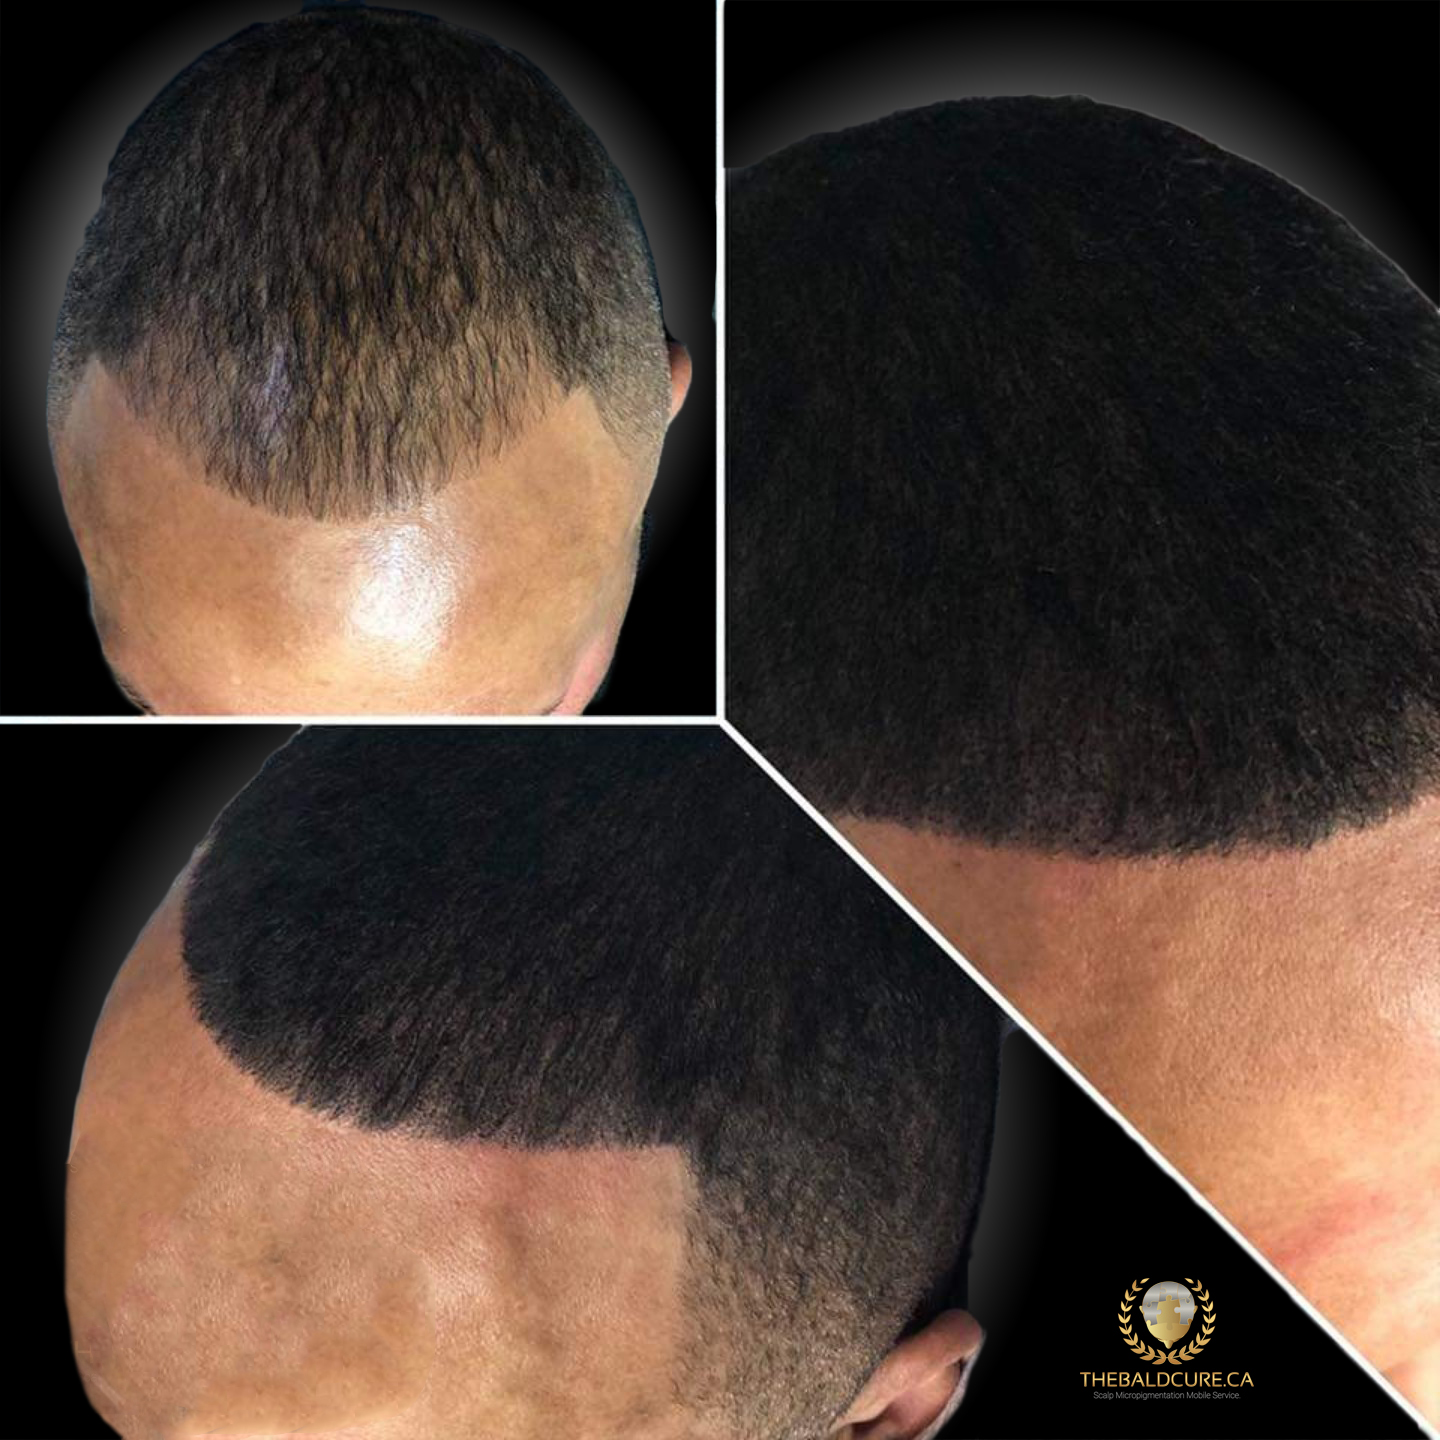 The Bald Cure Mobile Service In The Comfort Of Your Home We Beat Any Price 4 Pictures. Explore Our Photo Gallery